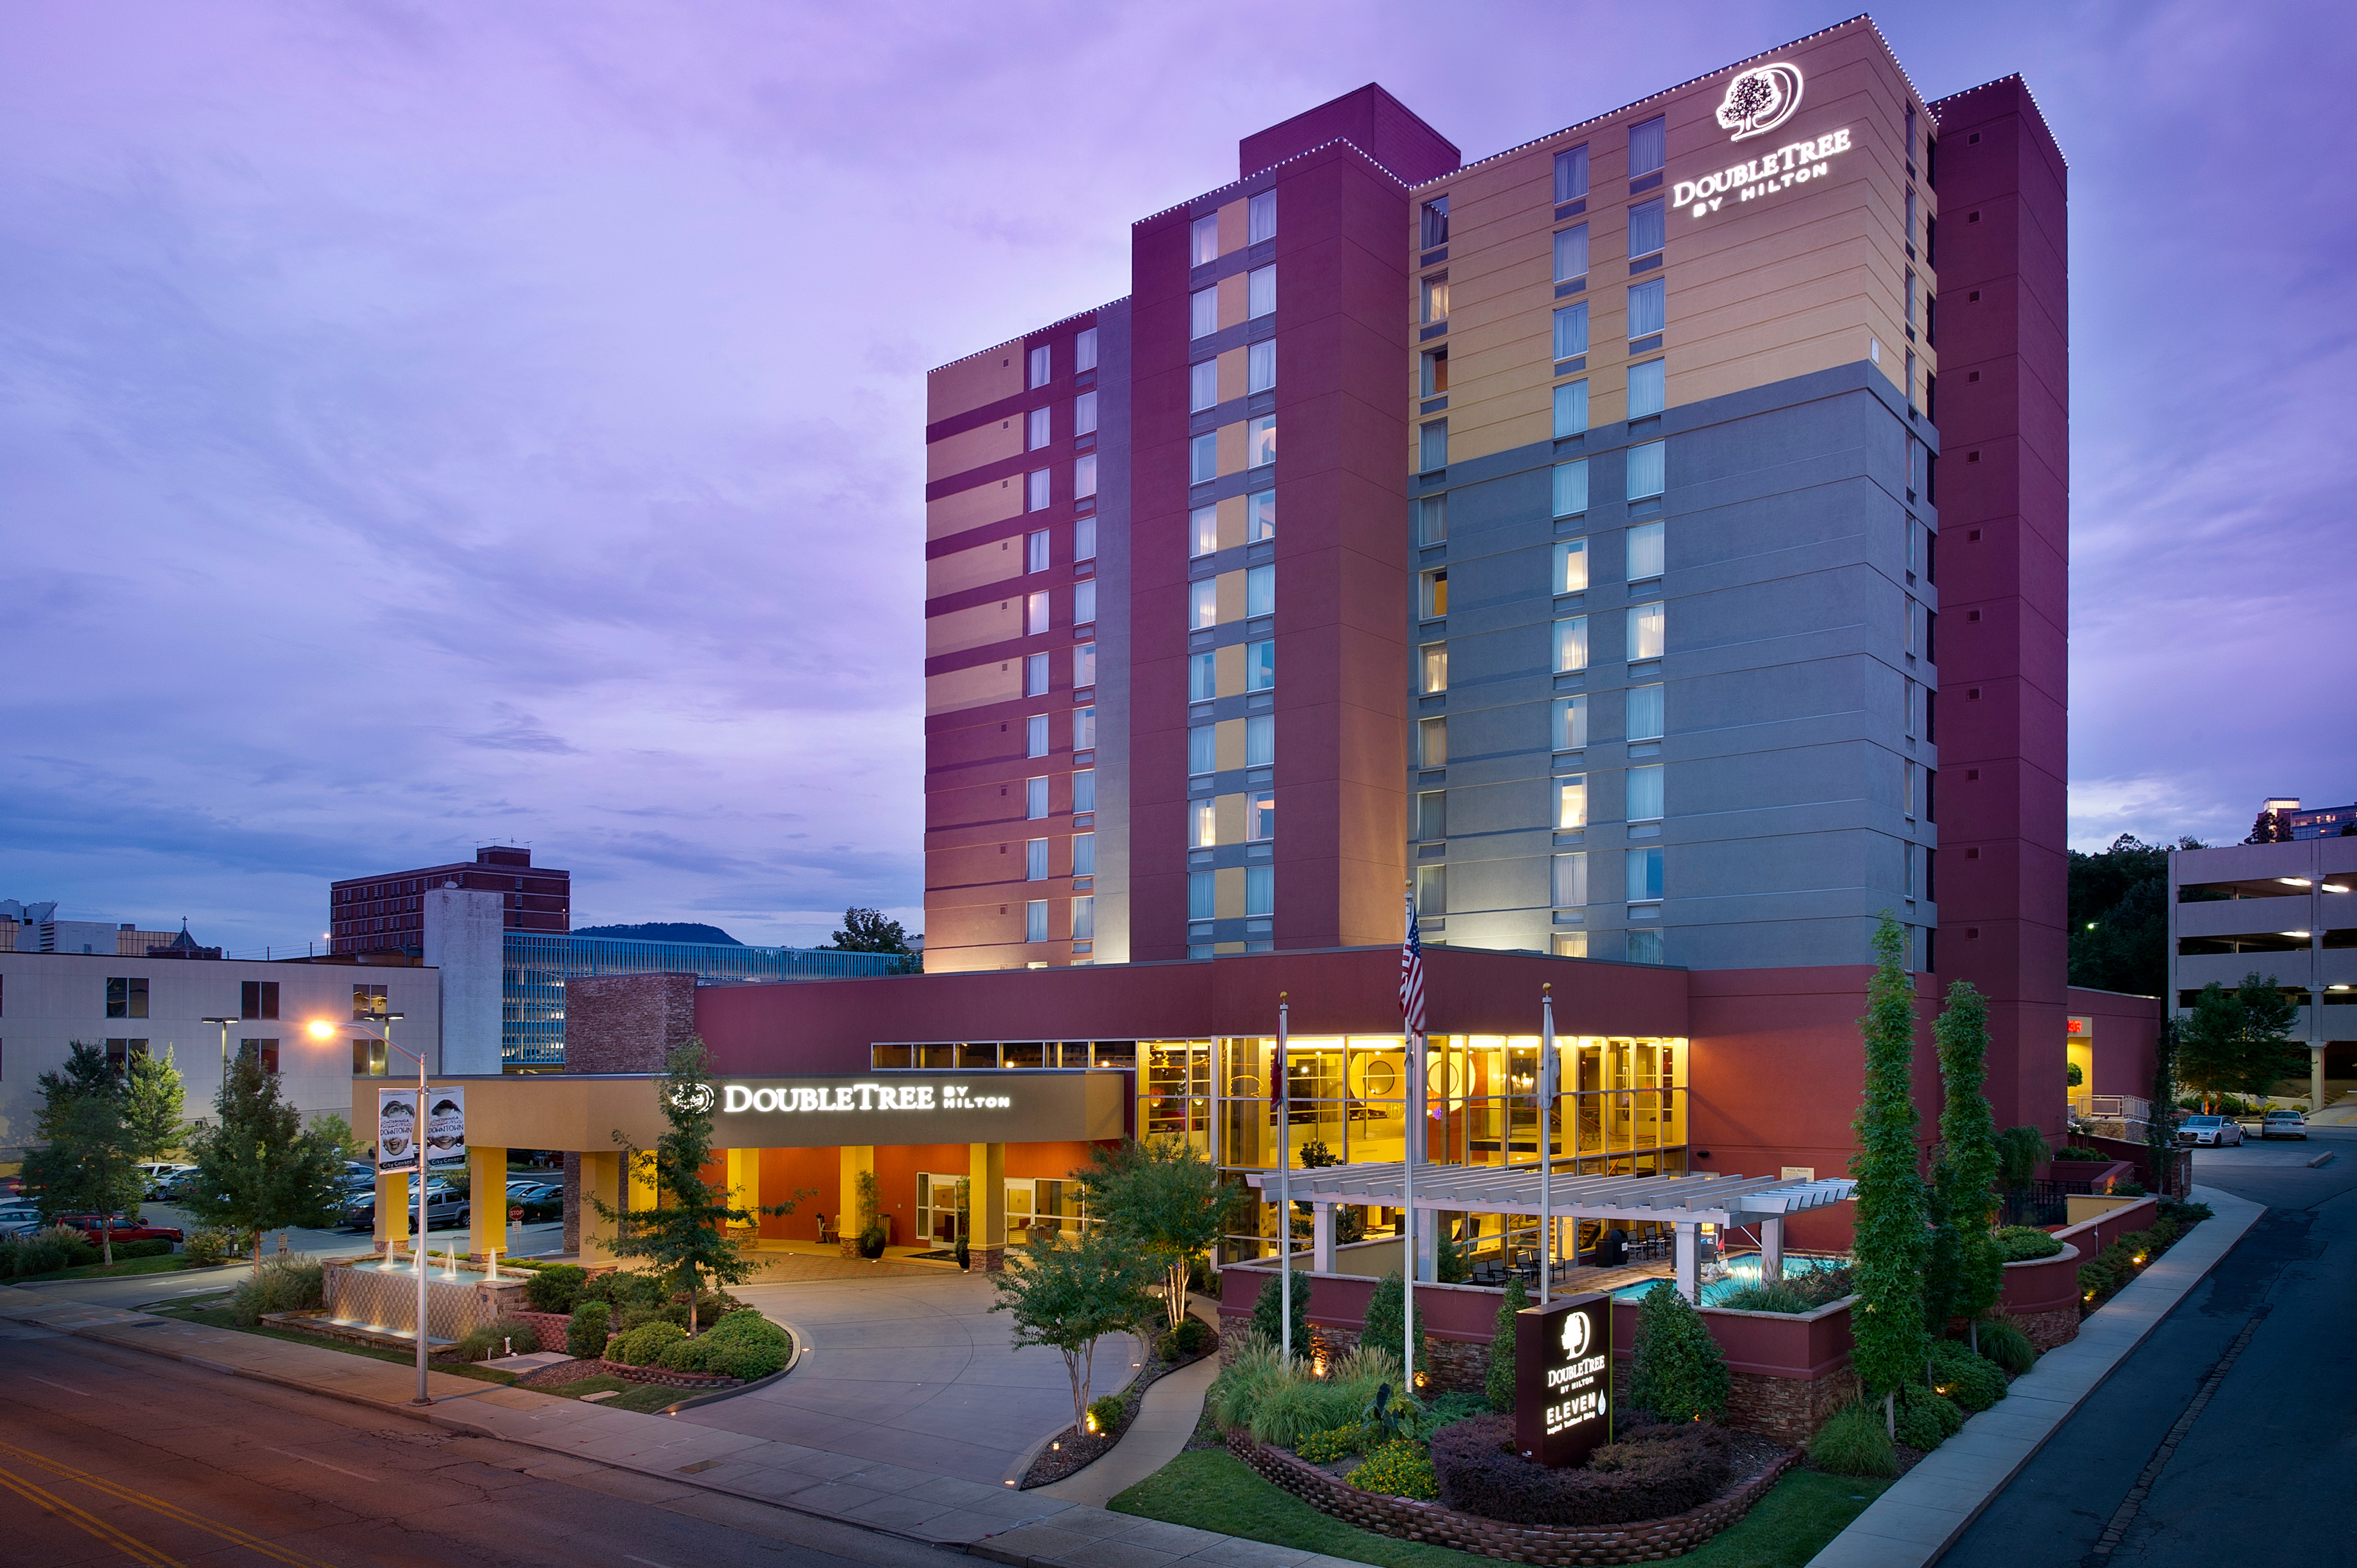 Doubletree By Hilton Hotel Chattanooga Downtown At 407 Chestnut Street Chattanooga Tn On Fave